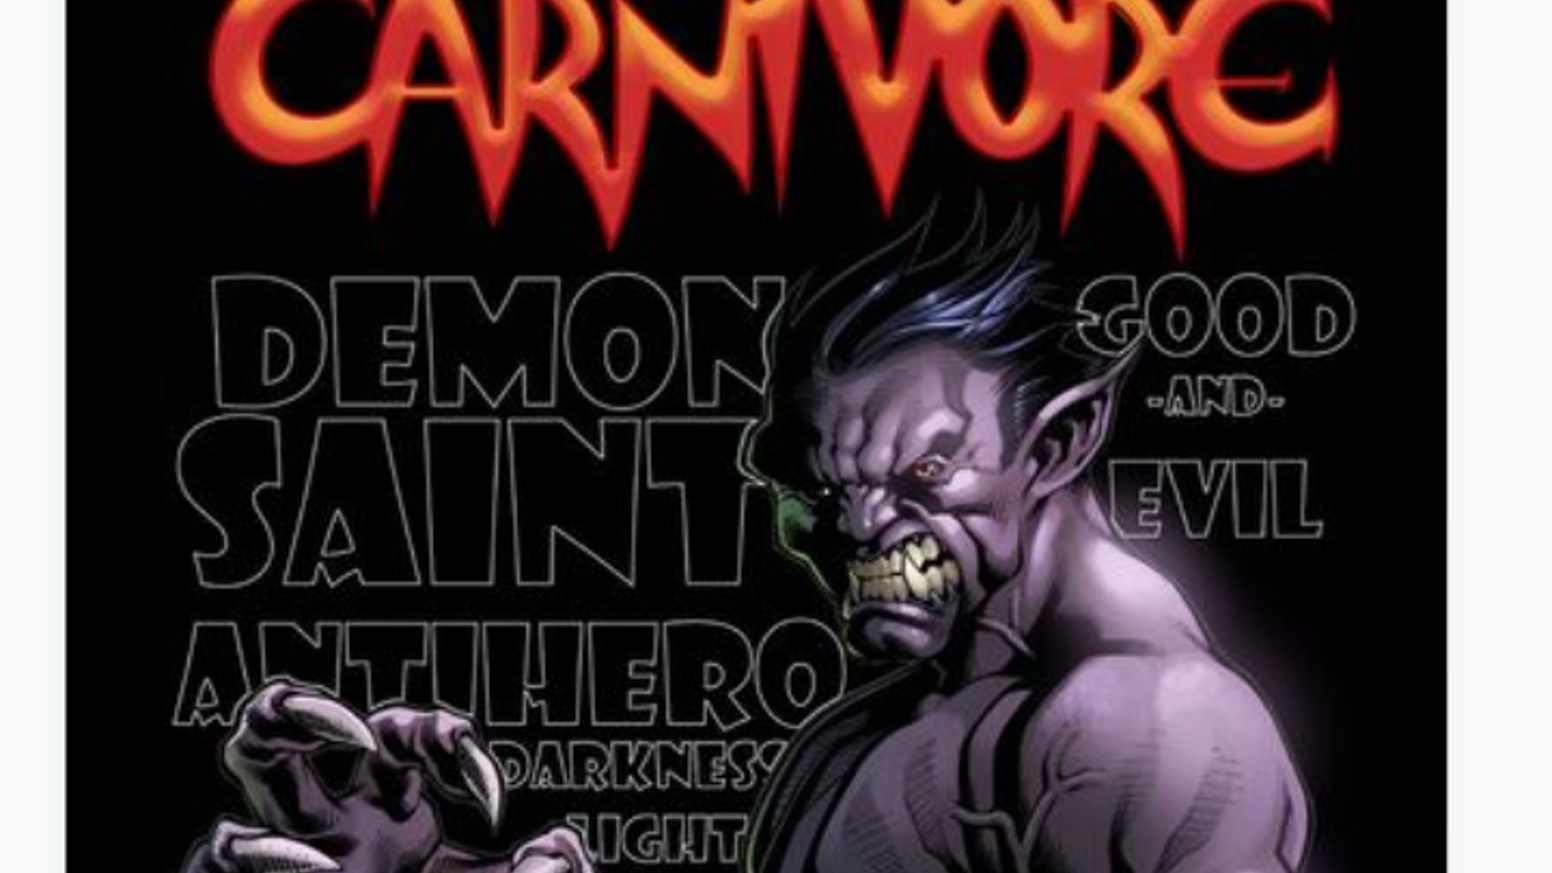 Carnivore #1 presented by MDV Comics by Dwayne Welch